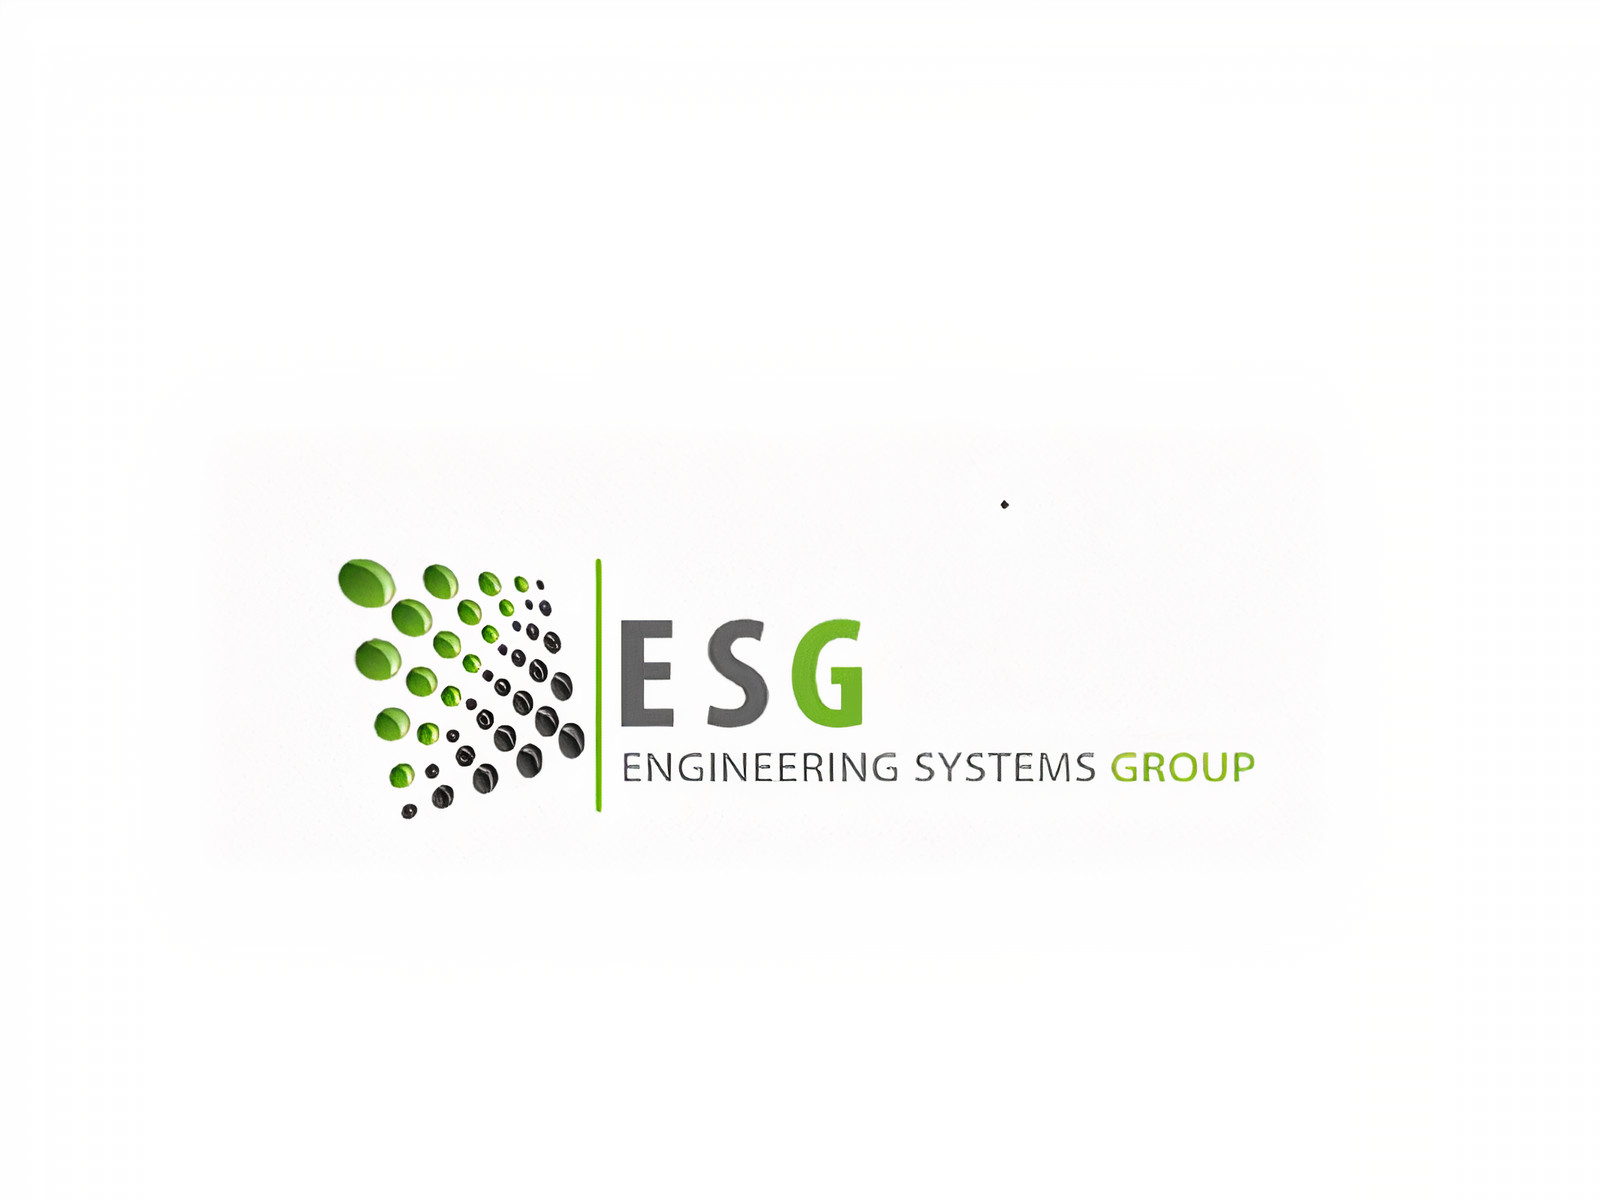 Engineering system group